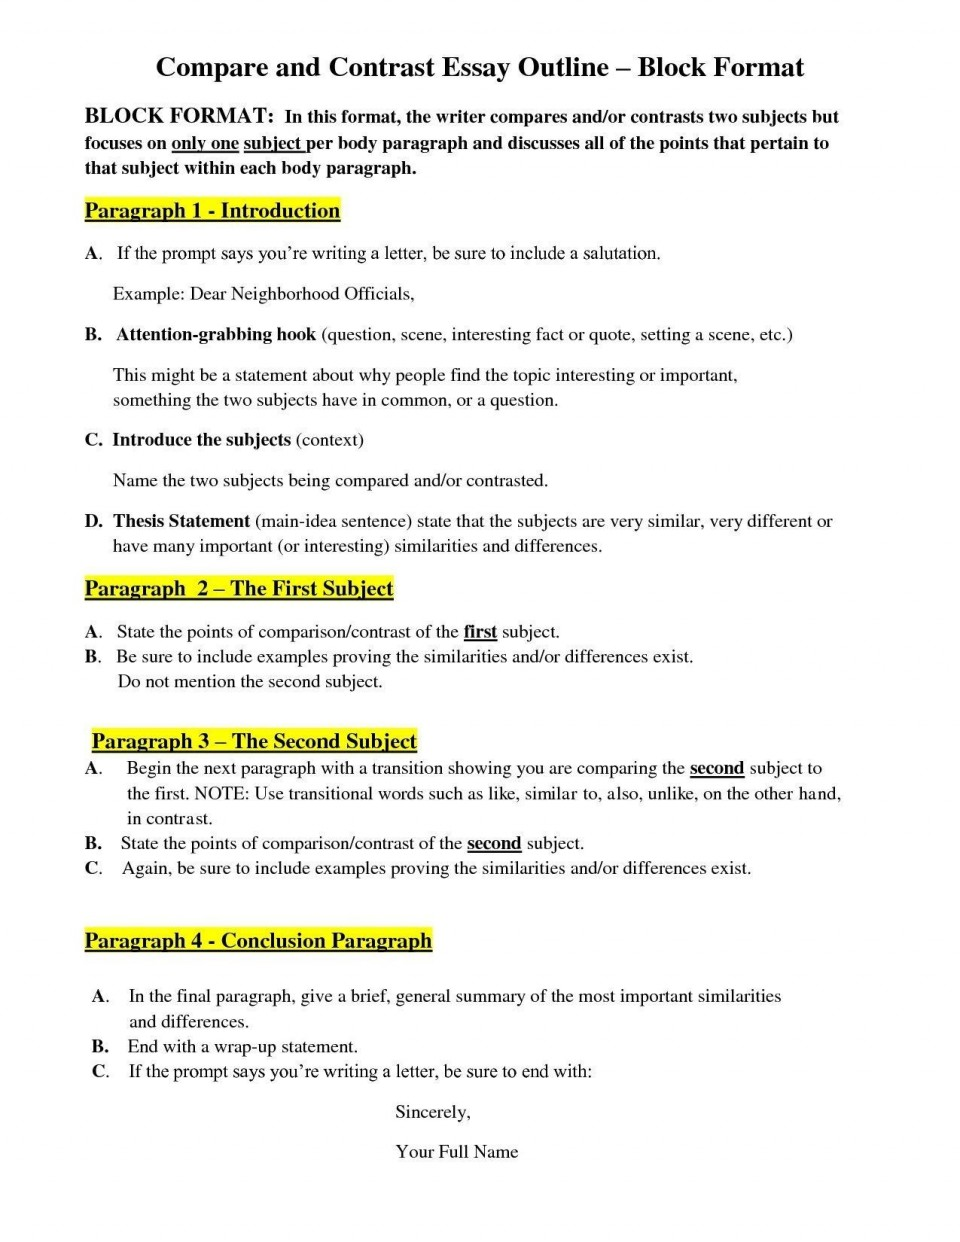 014 Essay Examplempare Andntrastmparison Best Examples Of Scenario In 6th Grade An Goo 3rd Food 5th Middle School Block Format Pdf High 4th Vs Striking Compare And Contrast Example Topics 8 8th College Outline 960